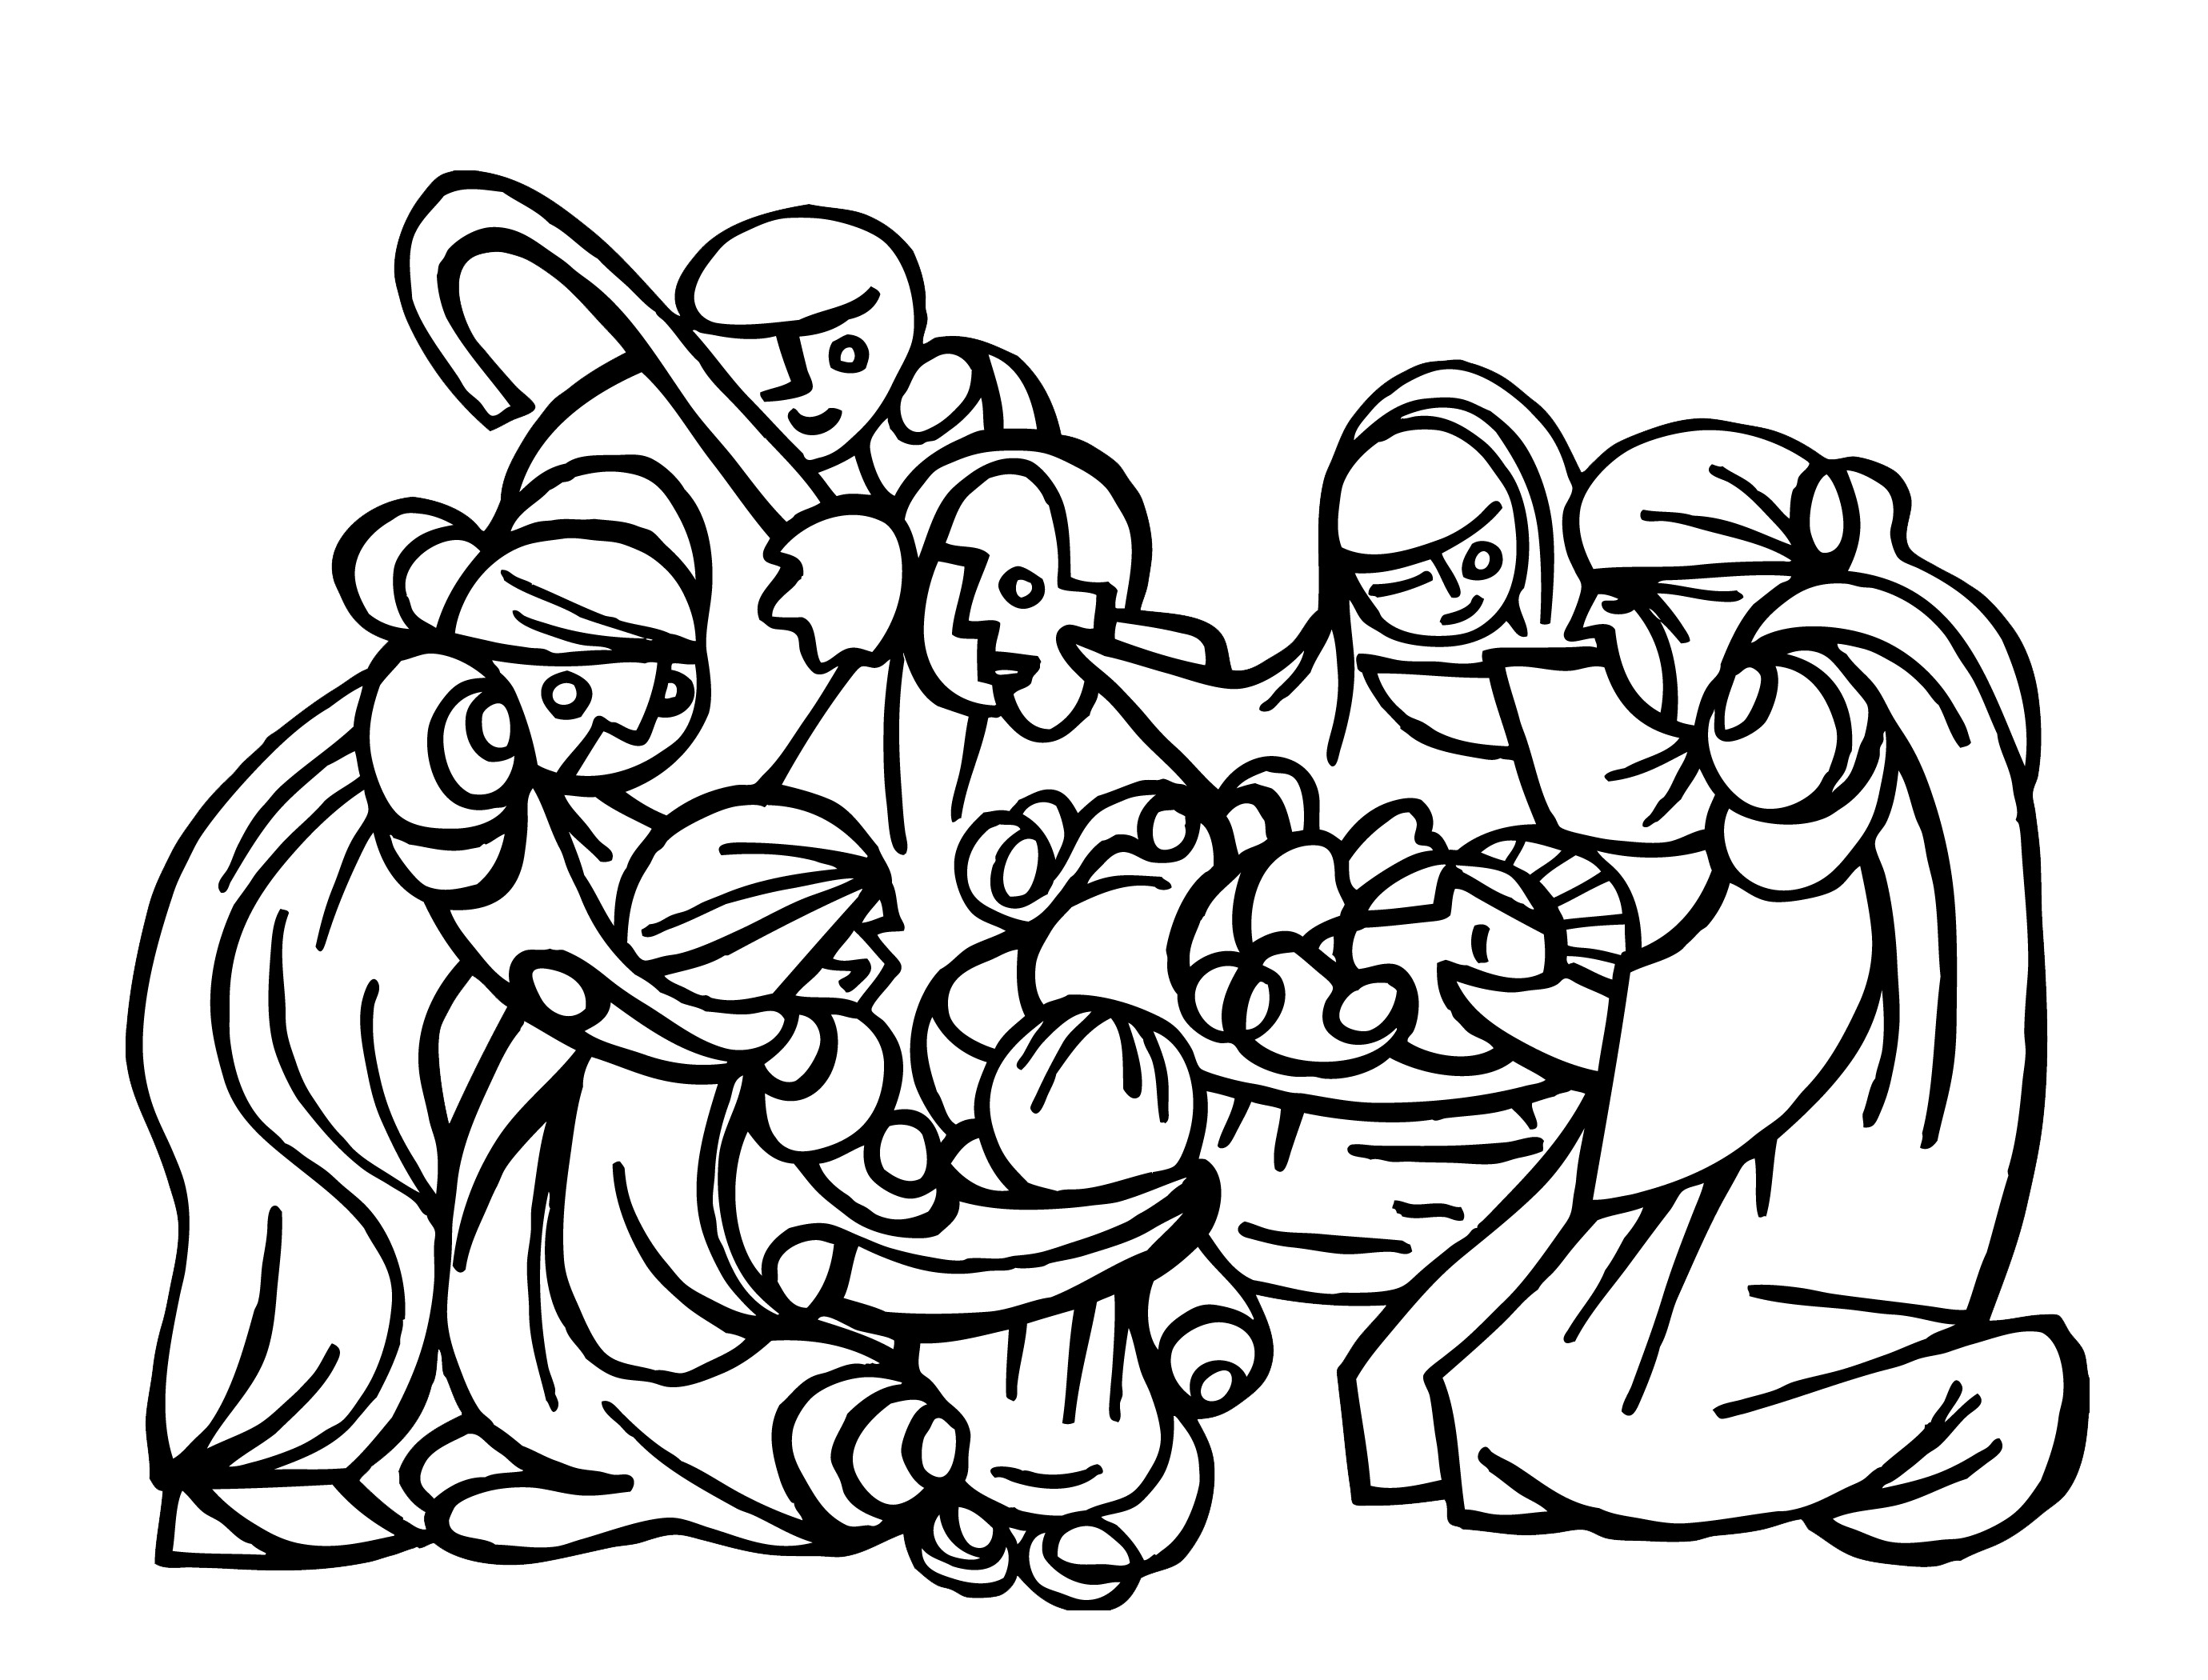 2760x2100 Drawing, The Nativity Revisited Ryan Seslow Art Amp Design